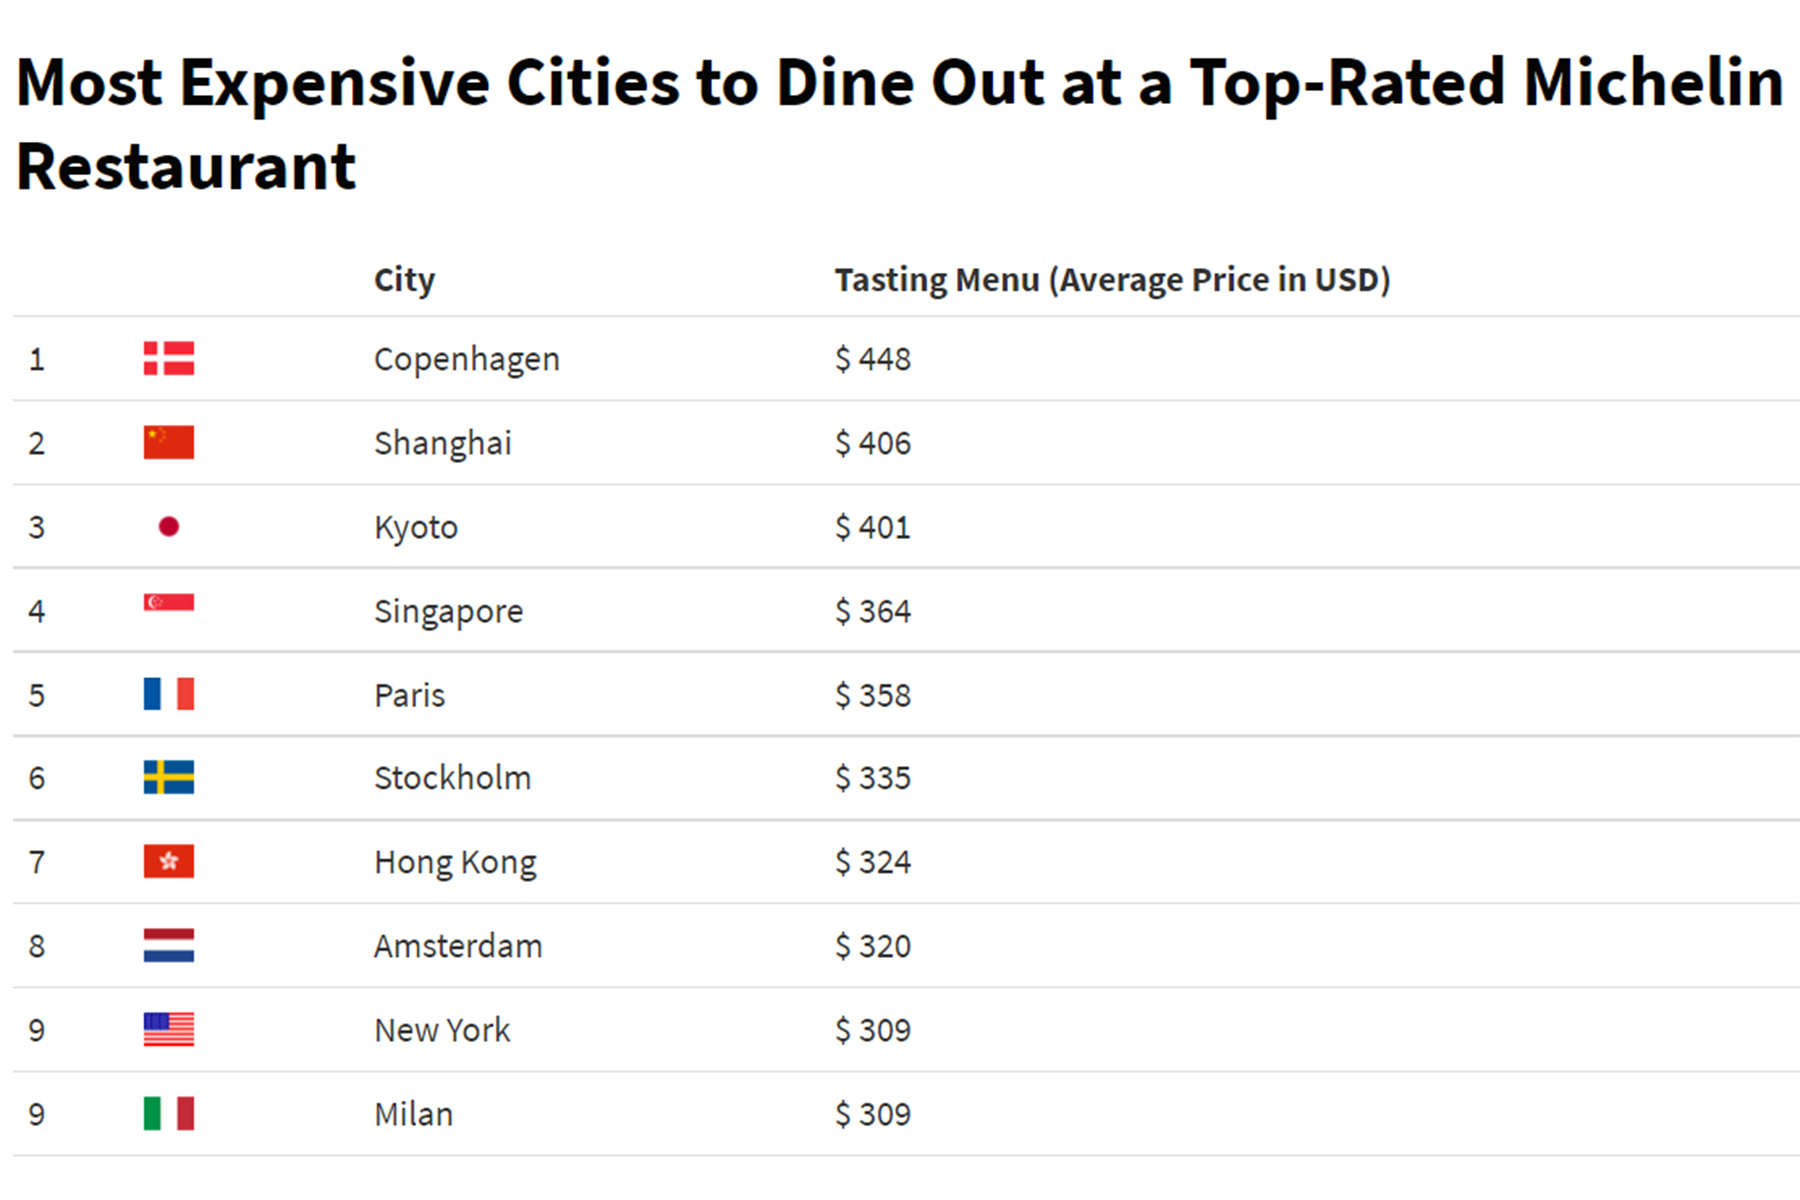 Most Expensive Cities To Dine Out at a Top-Rated Michelin Restaurant infographic